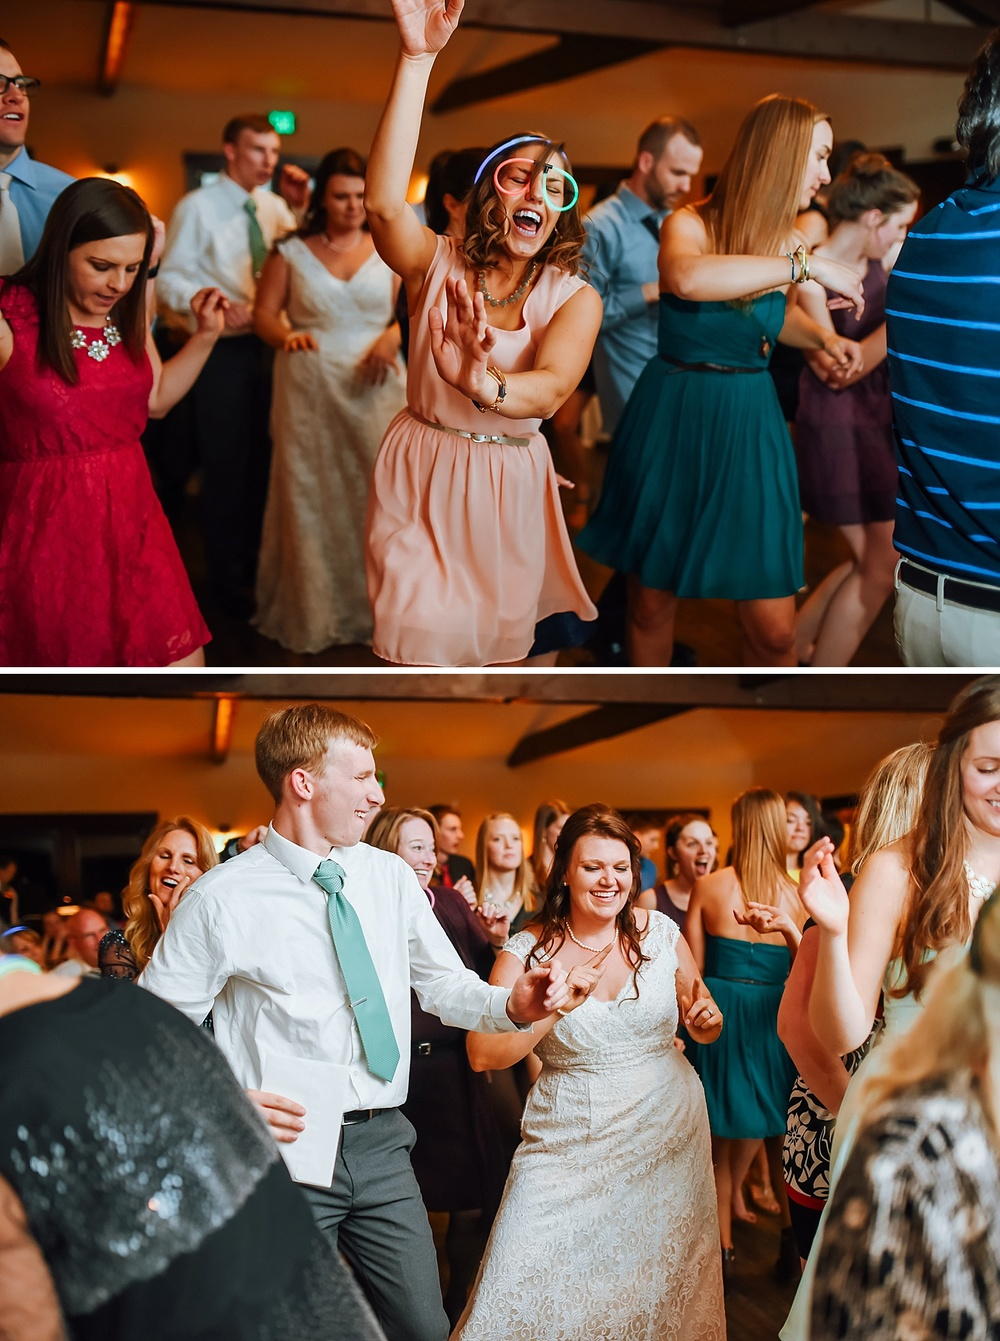 I love the wedding party dancing with glow stick glasses on. Mary's Lake Lodge is an awesome wedding reception venue! Love it! Photo by Maddie Mae Photography